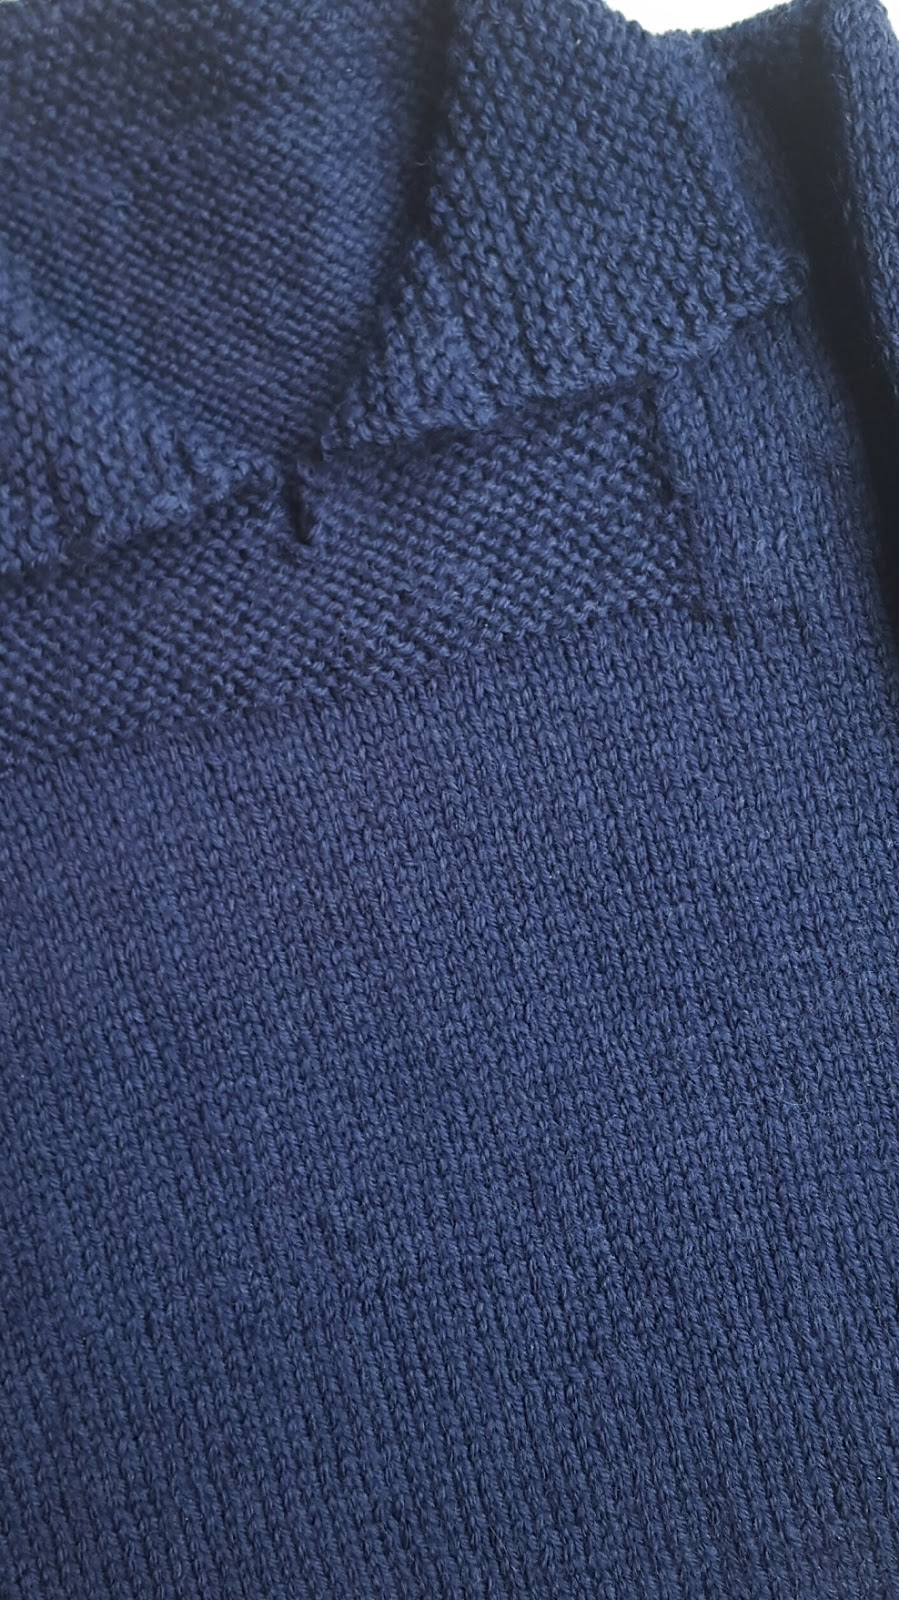 Knit Up Stitches Around Neckline : Quiltingorchardist: A Big Ship Sailed through the ........